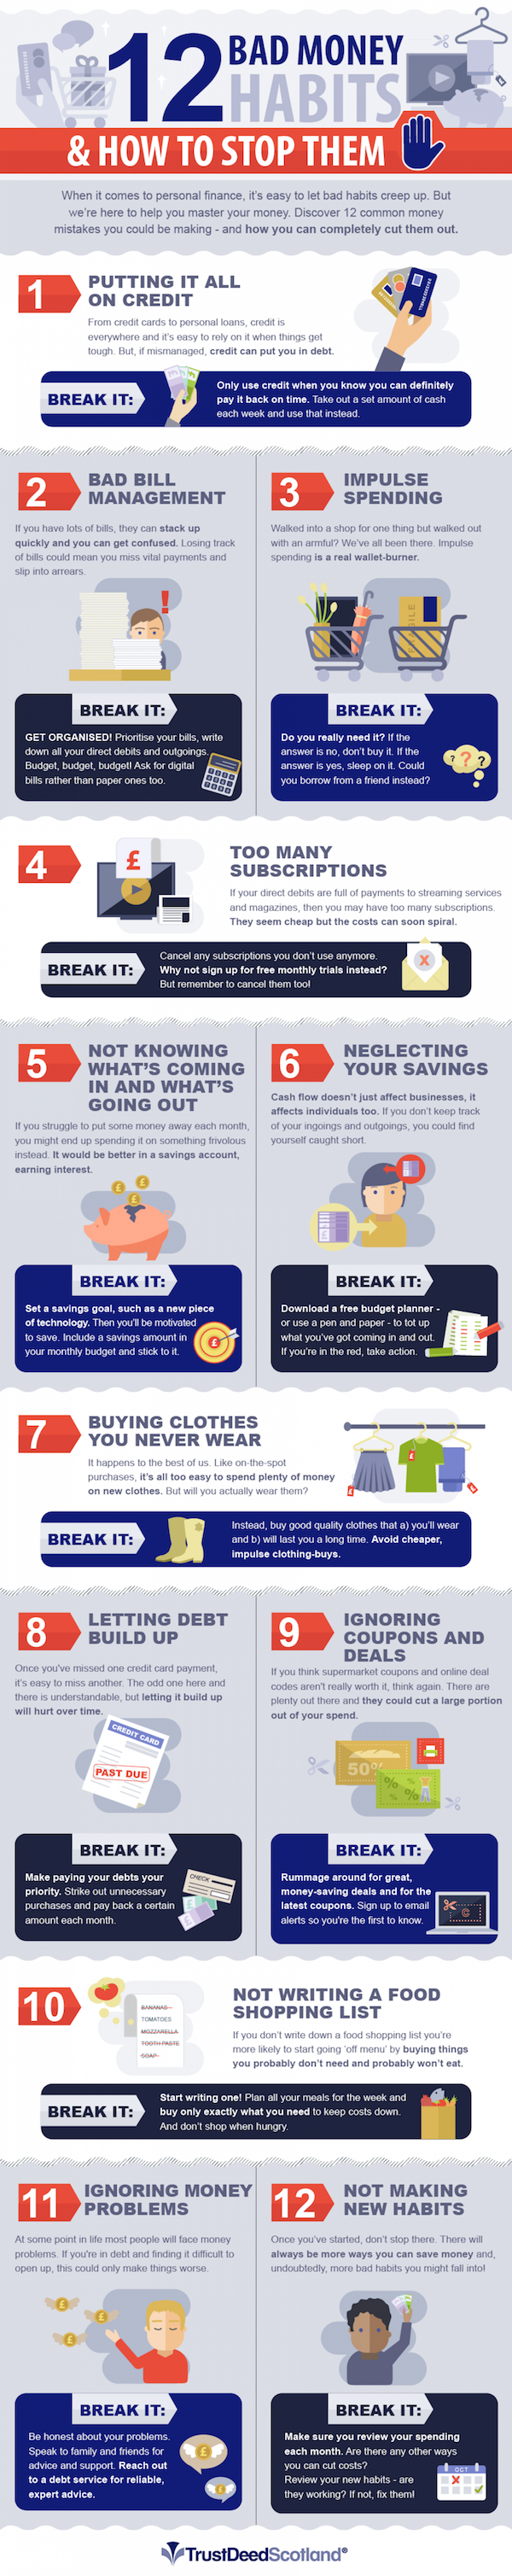 12 Bad Money Habits And How To Stop Them